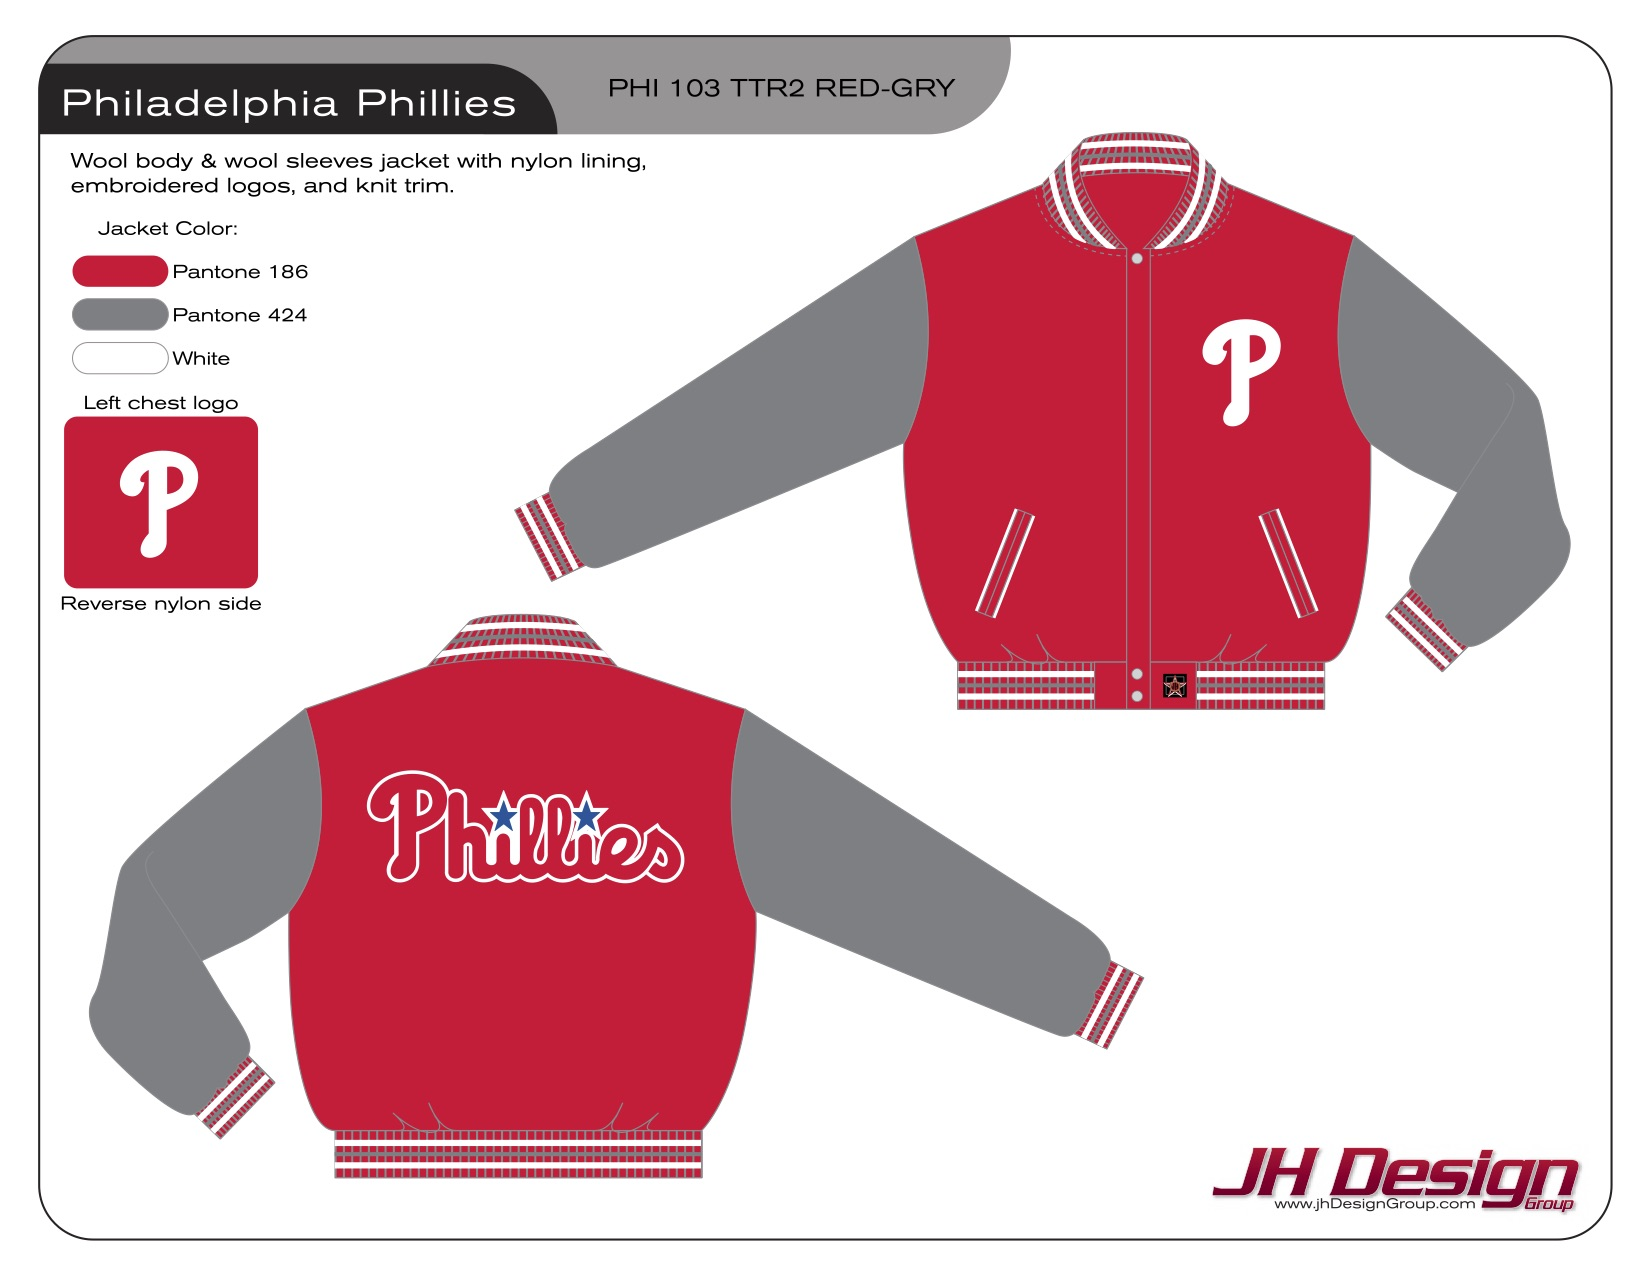 PHI 103 TTR2 RED-GRY